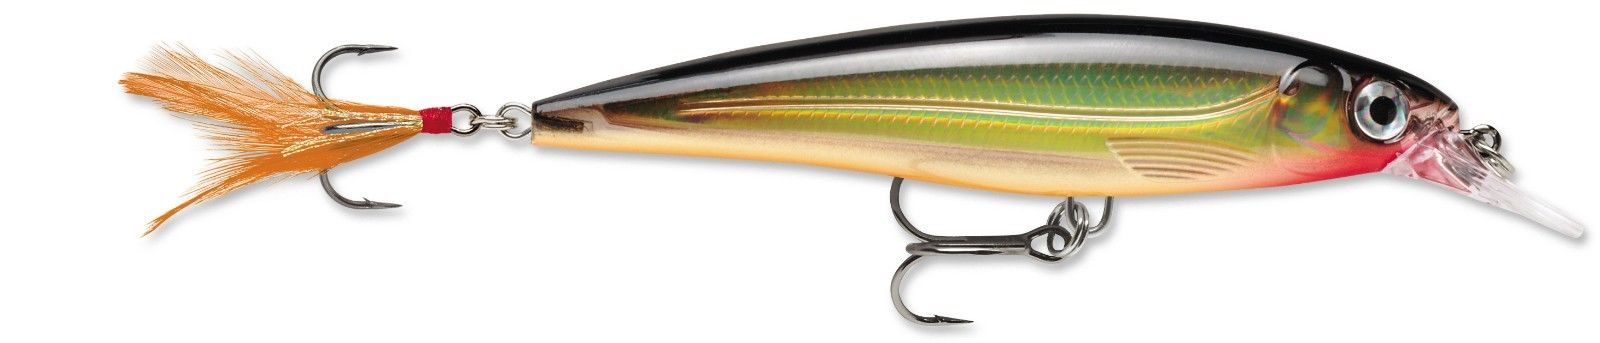 Rapala X-Rap 04 Shallow Diving Jerkbait